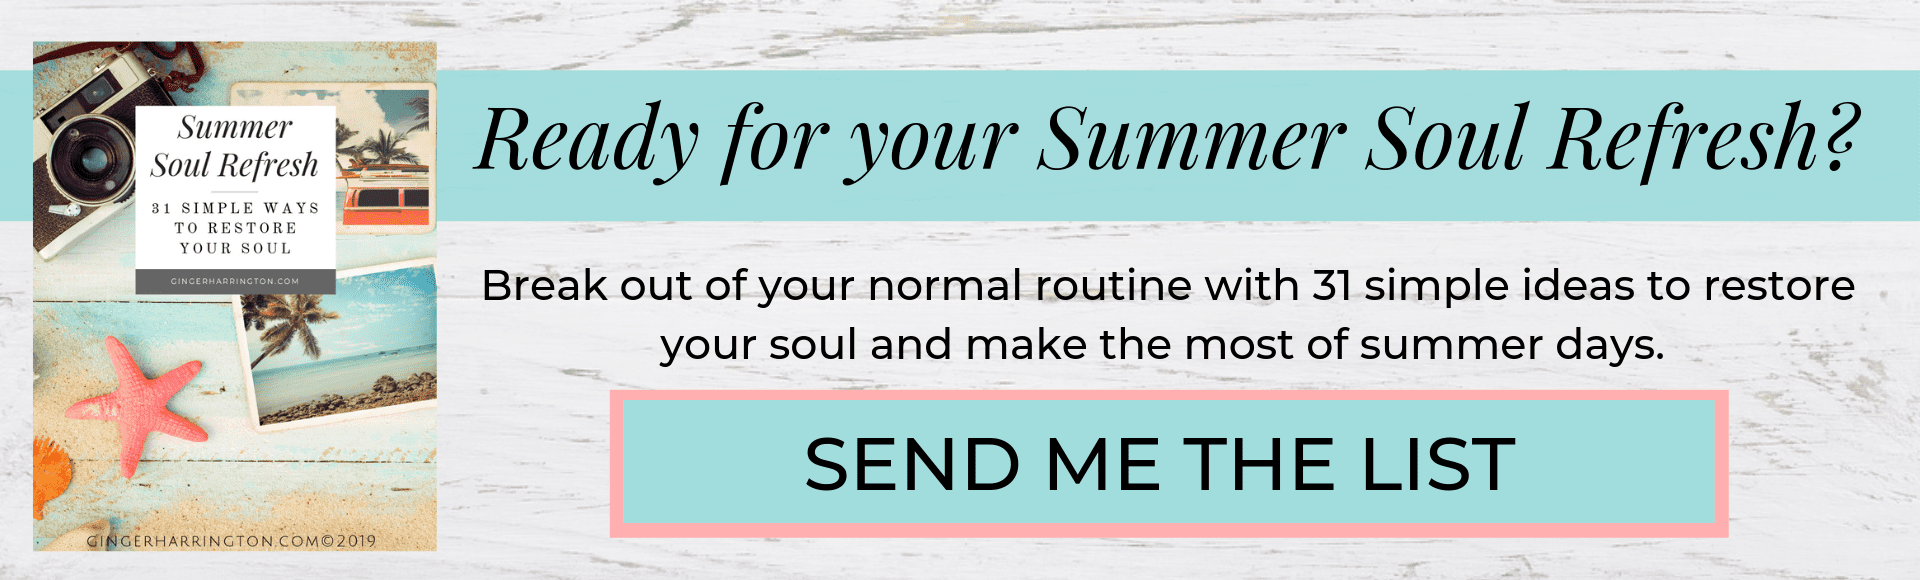 Cover copy of eBook called Summer Soul Refresh: 31 Simple Ways to Restore Your Soul.